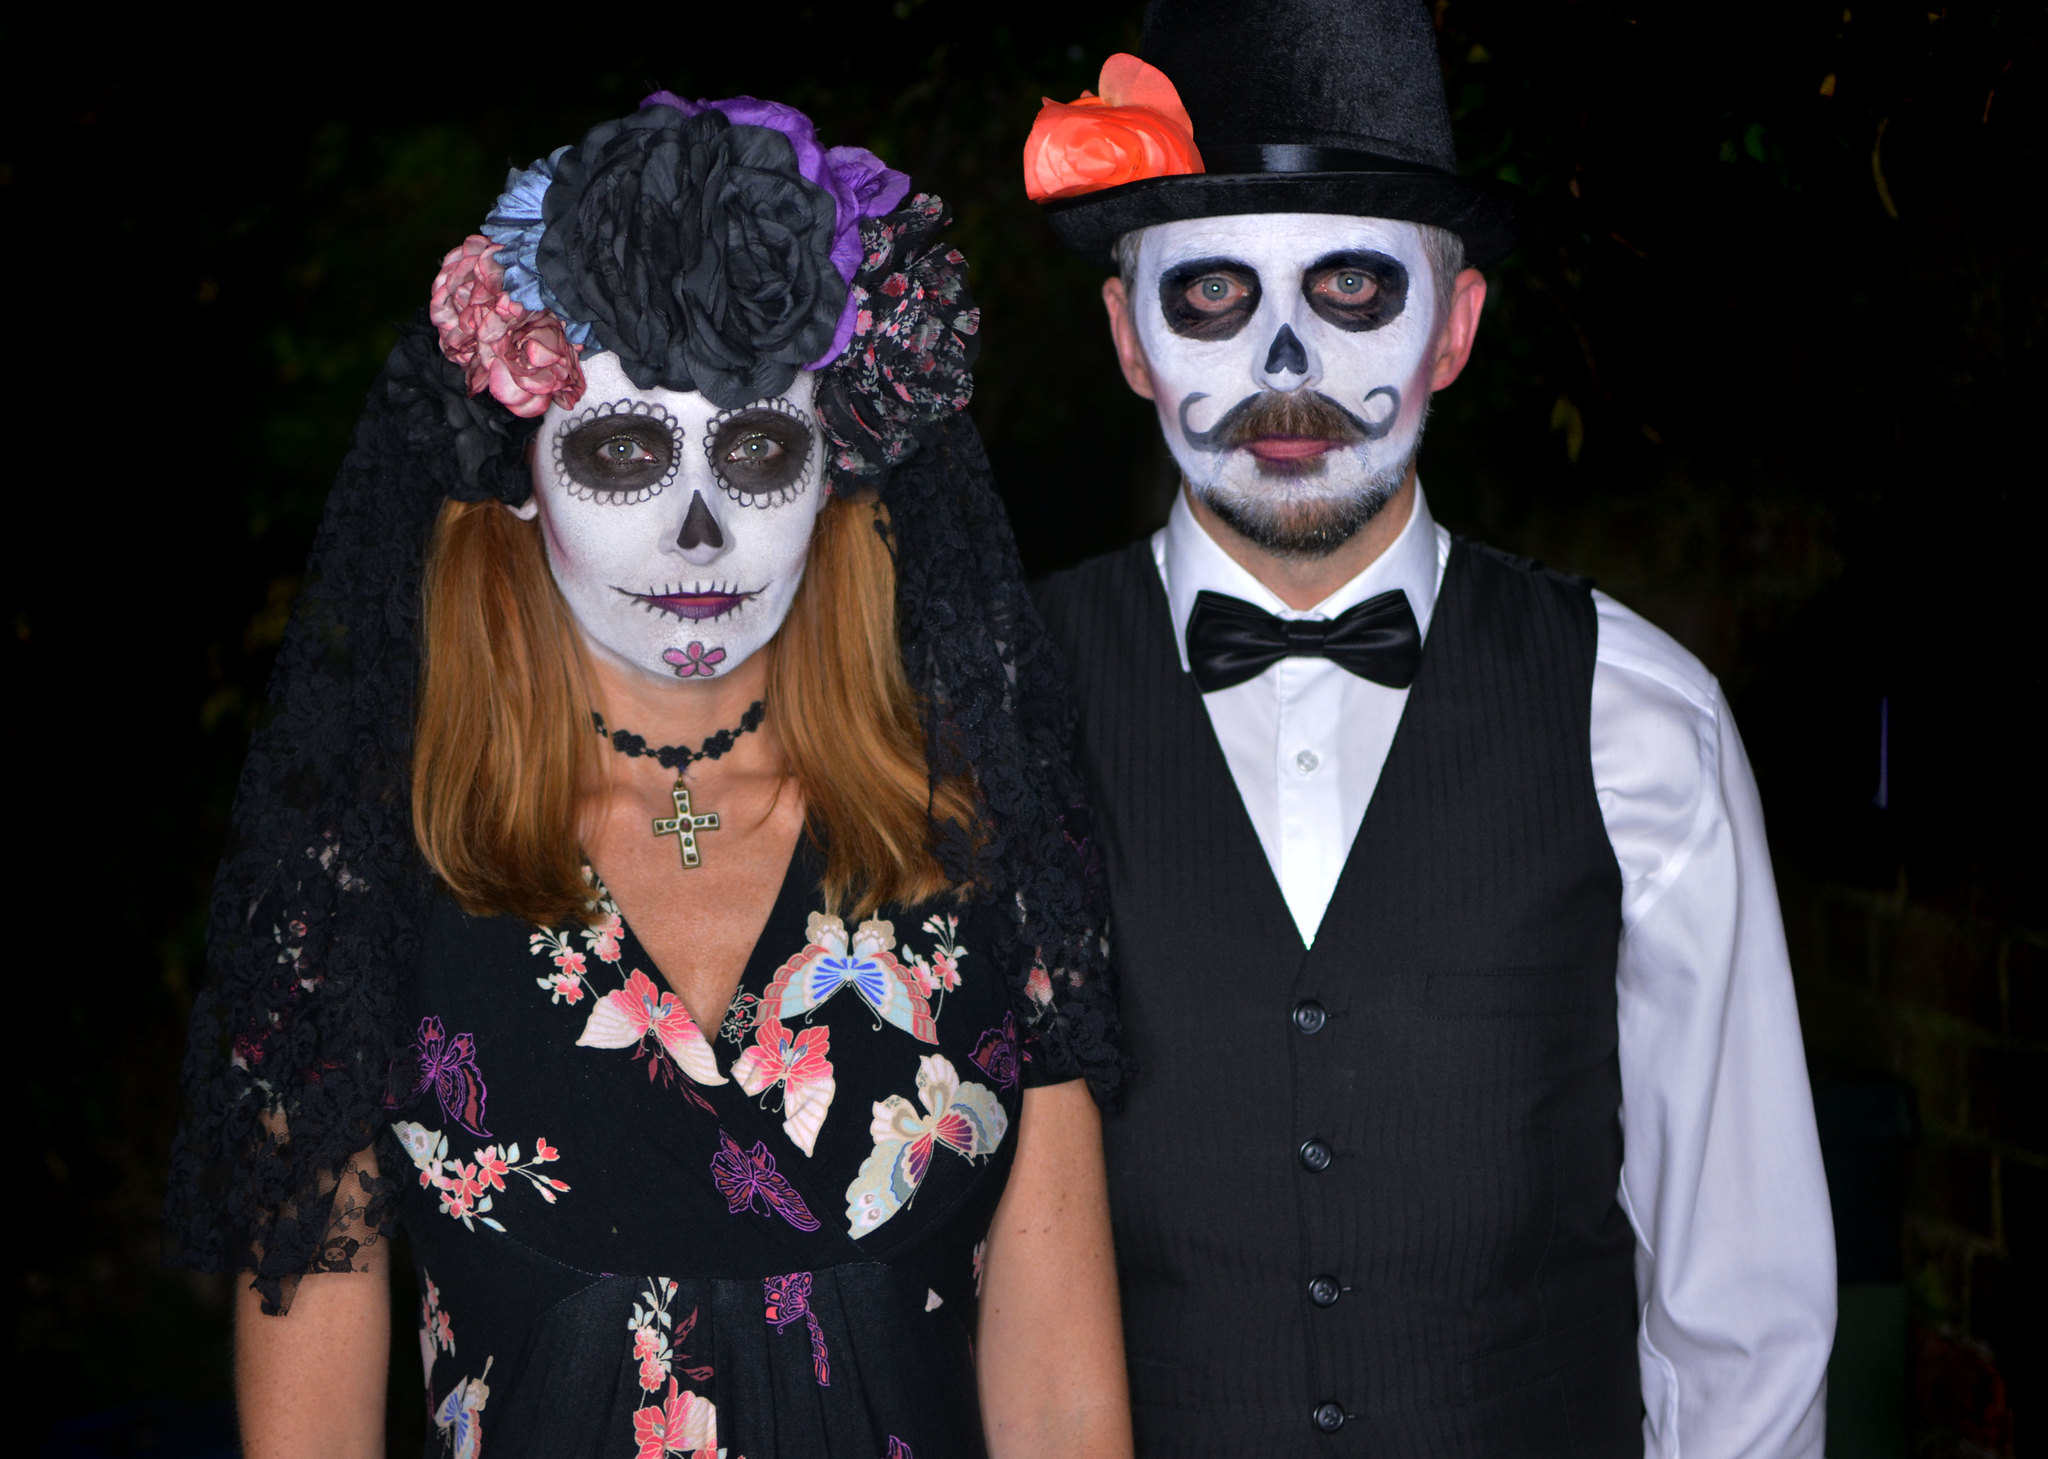 Mexican Day of the Dead Halloween costumes